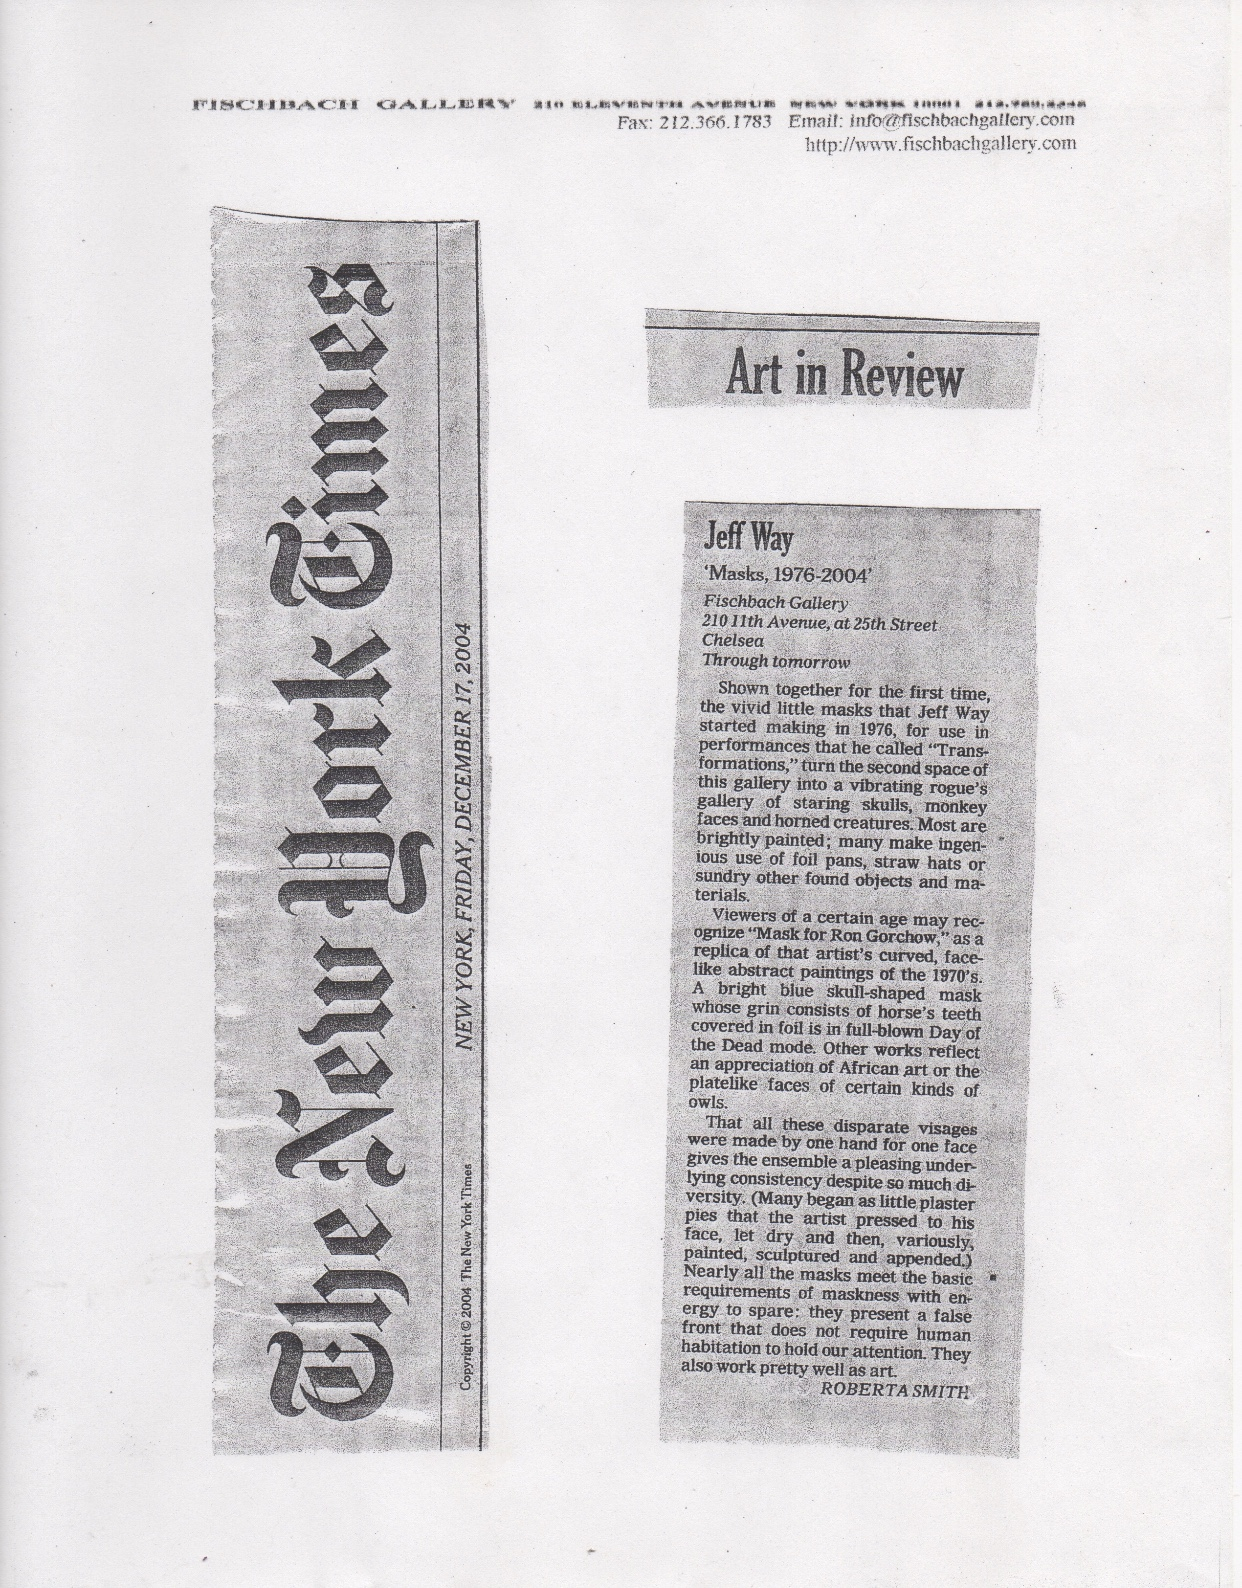 Art in Review, Smith Roberta, New York Times, 2004